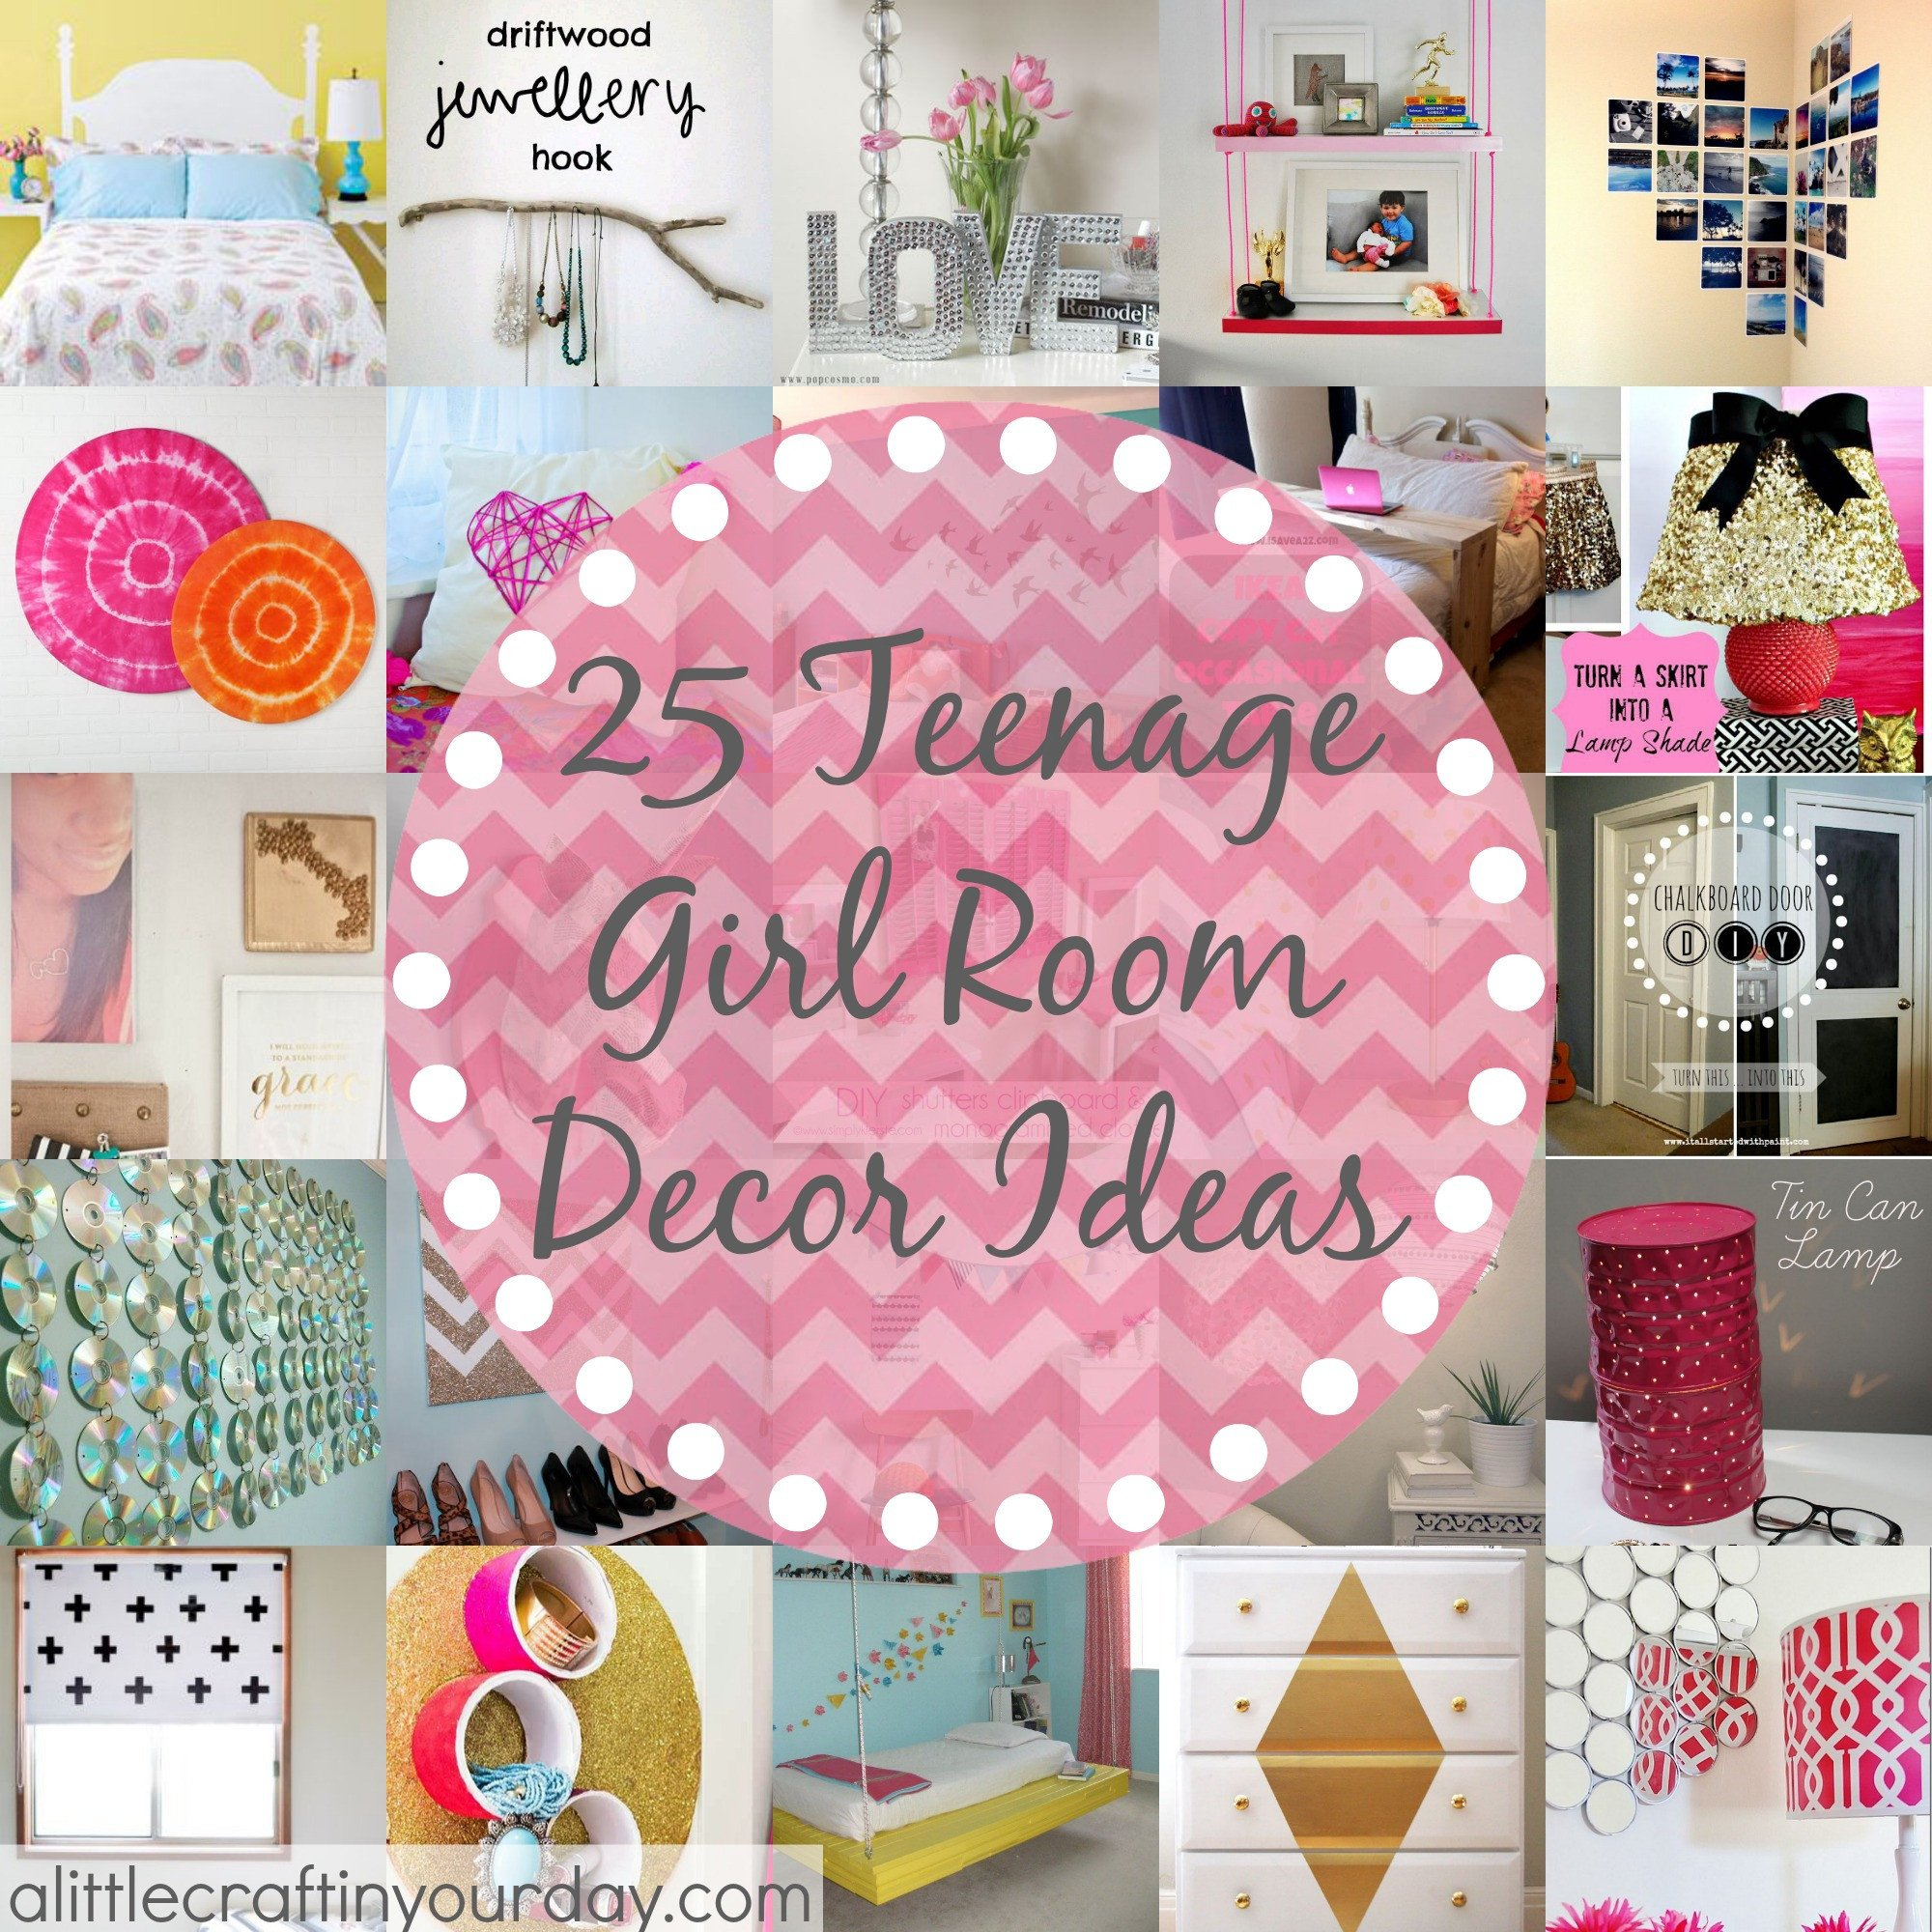 Diy Room Decor for Teens Awesome 25 More Teenage Girl Room Decor Ideas A Little Craft In Your Daya Little Craft In Your Day